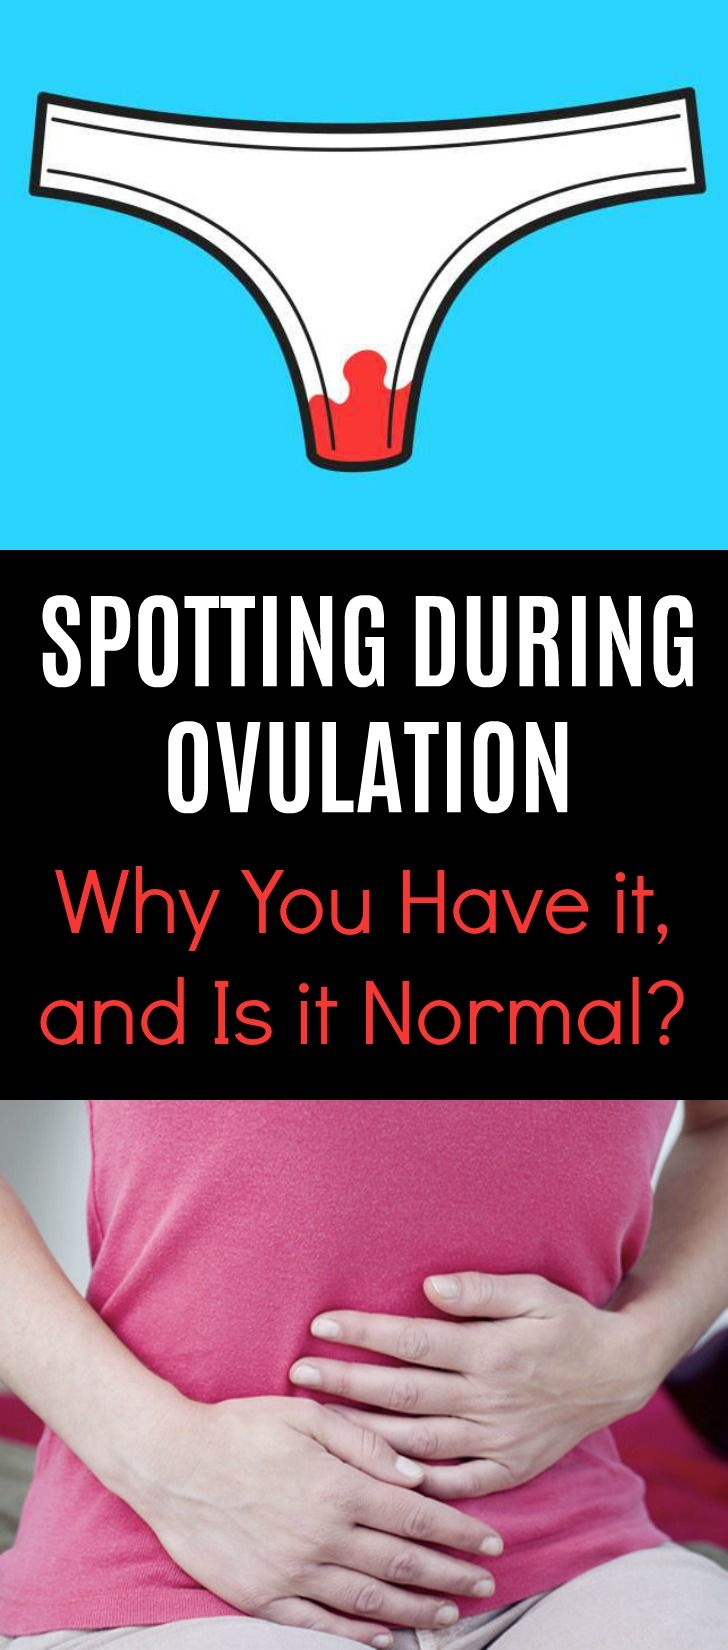 Spotting During Ovulation: Why You Have it, and Is it Normal